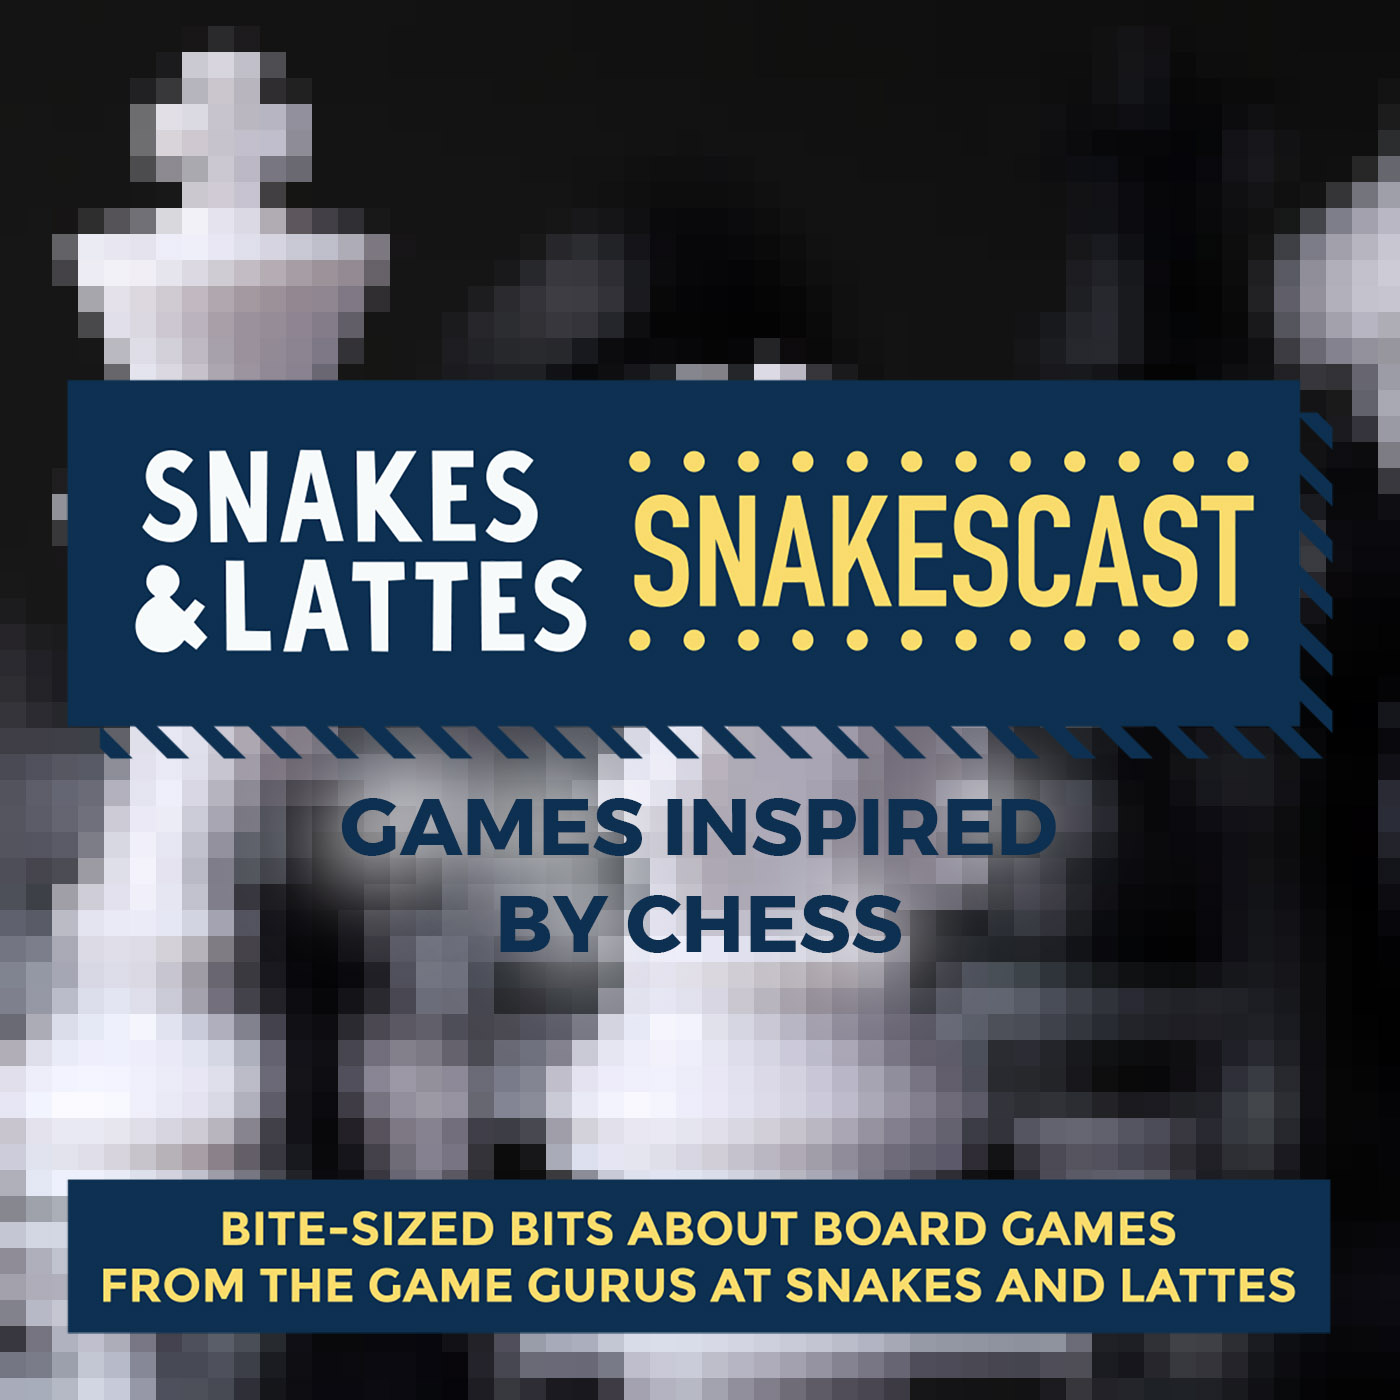 Games Inspired by Chess, Part 1 - Chess, it's appeal, and why it is great to riff off